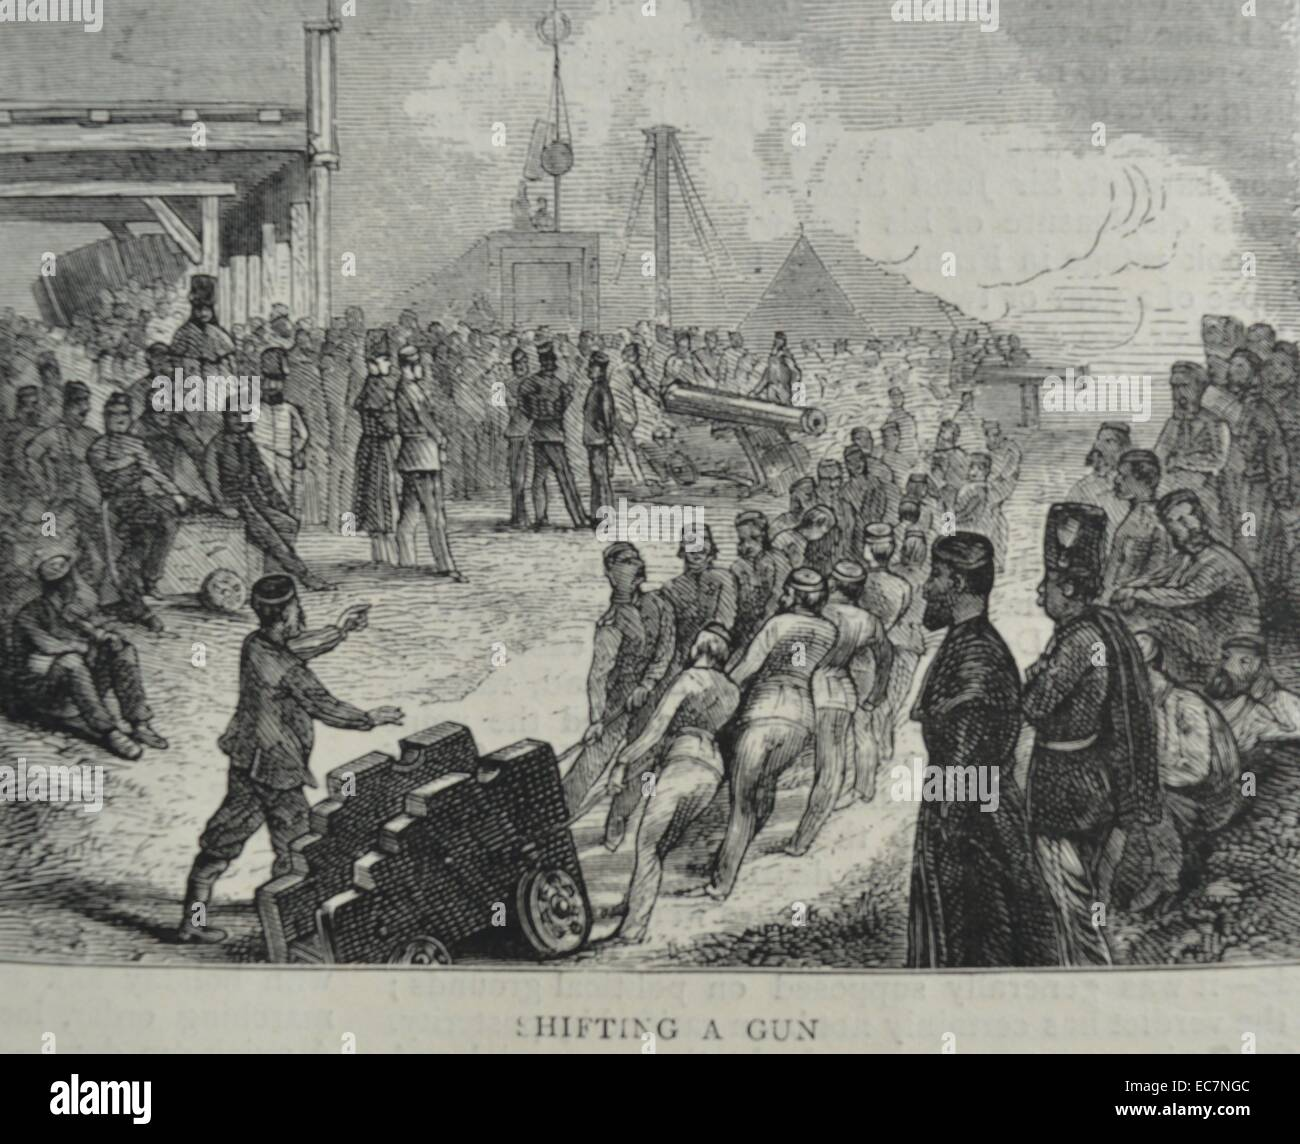 Engraving depicting a cannon holder being moved. Dated 1870 - Stock Image